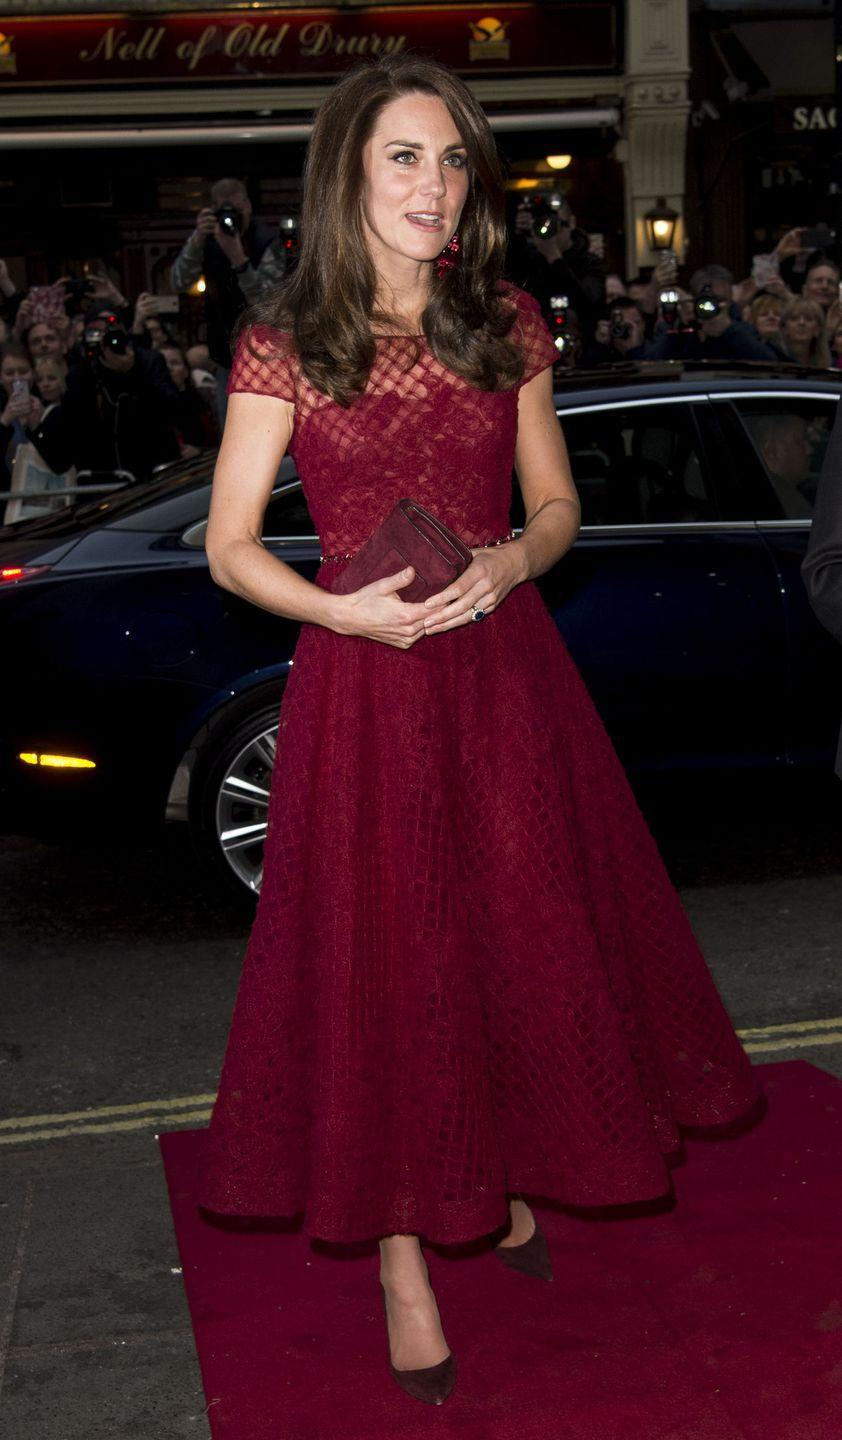 <p>Kate made a burgundy statement at a premiere in London, matching her dress, bag, shoes, and even her earrings. (Side note: She also kinda matches the carpet, lol.) </p>